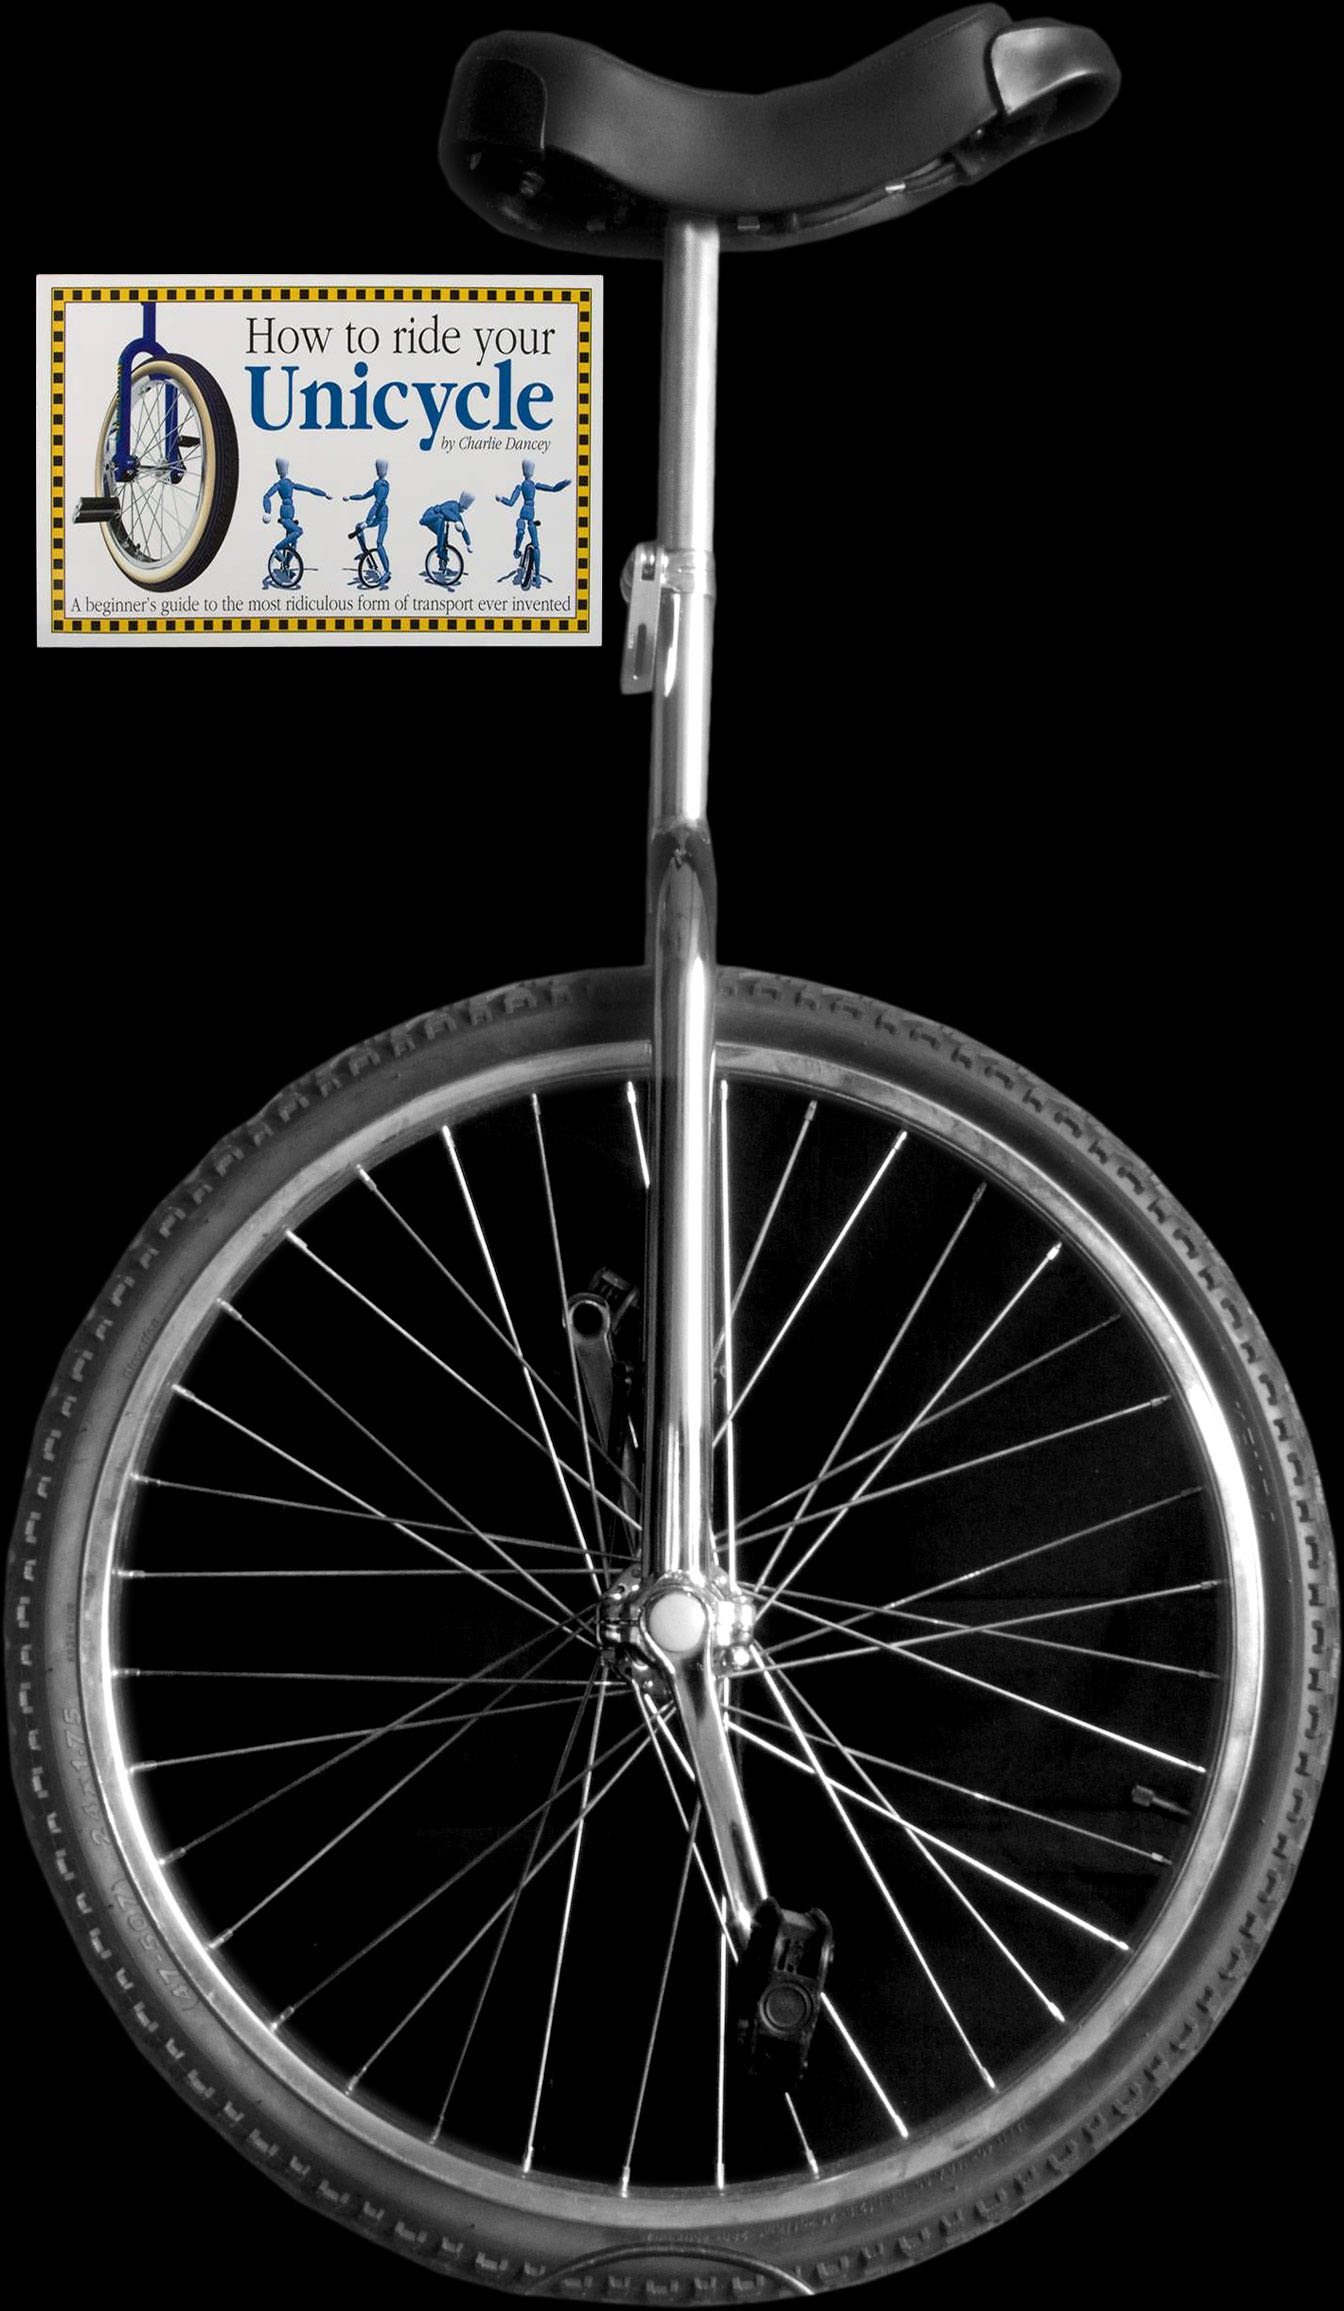 "Standard Indy Trainer 24"" Unicycle and Book deal"